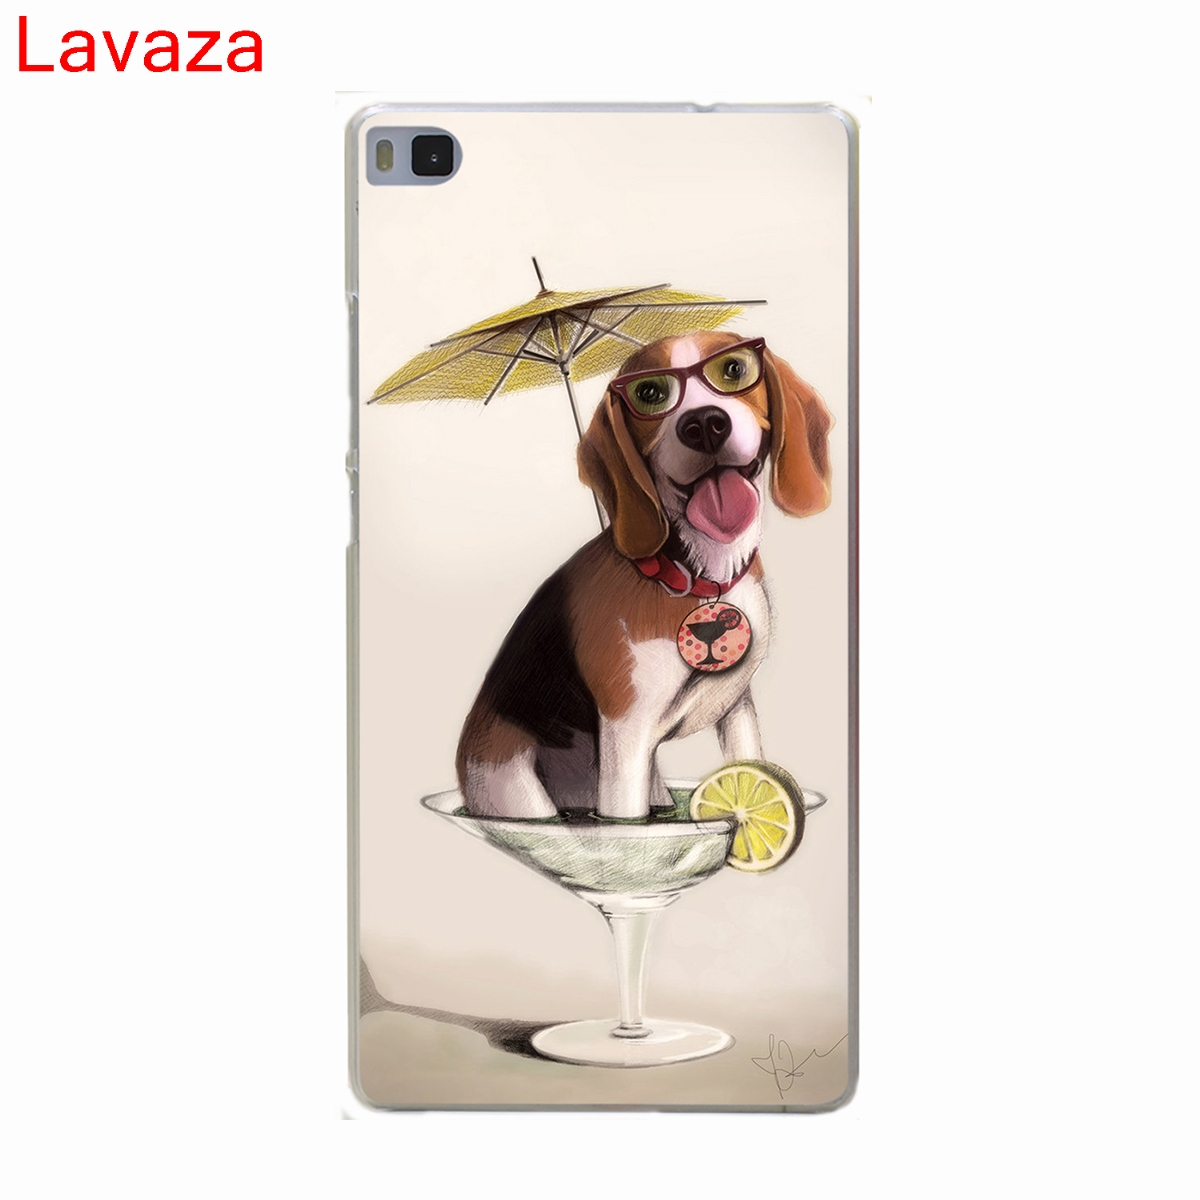 Lavaza Tattooed Bullterrier Cute dog Biaoqing Hard Case for Huawei P10 P9 P8 Lite P10 P9 Plus P6 P7 G7 & Honor 6 7 8 Lite 4C 4X